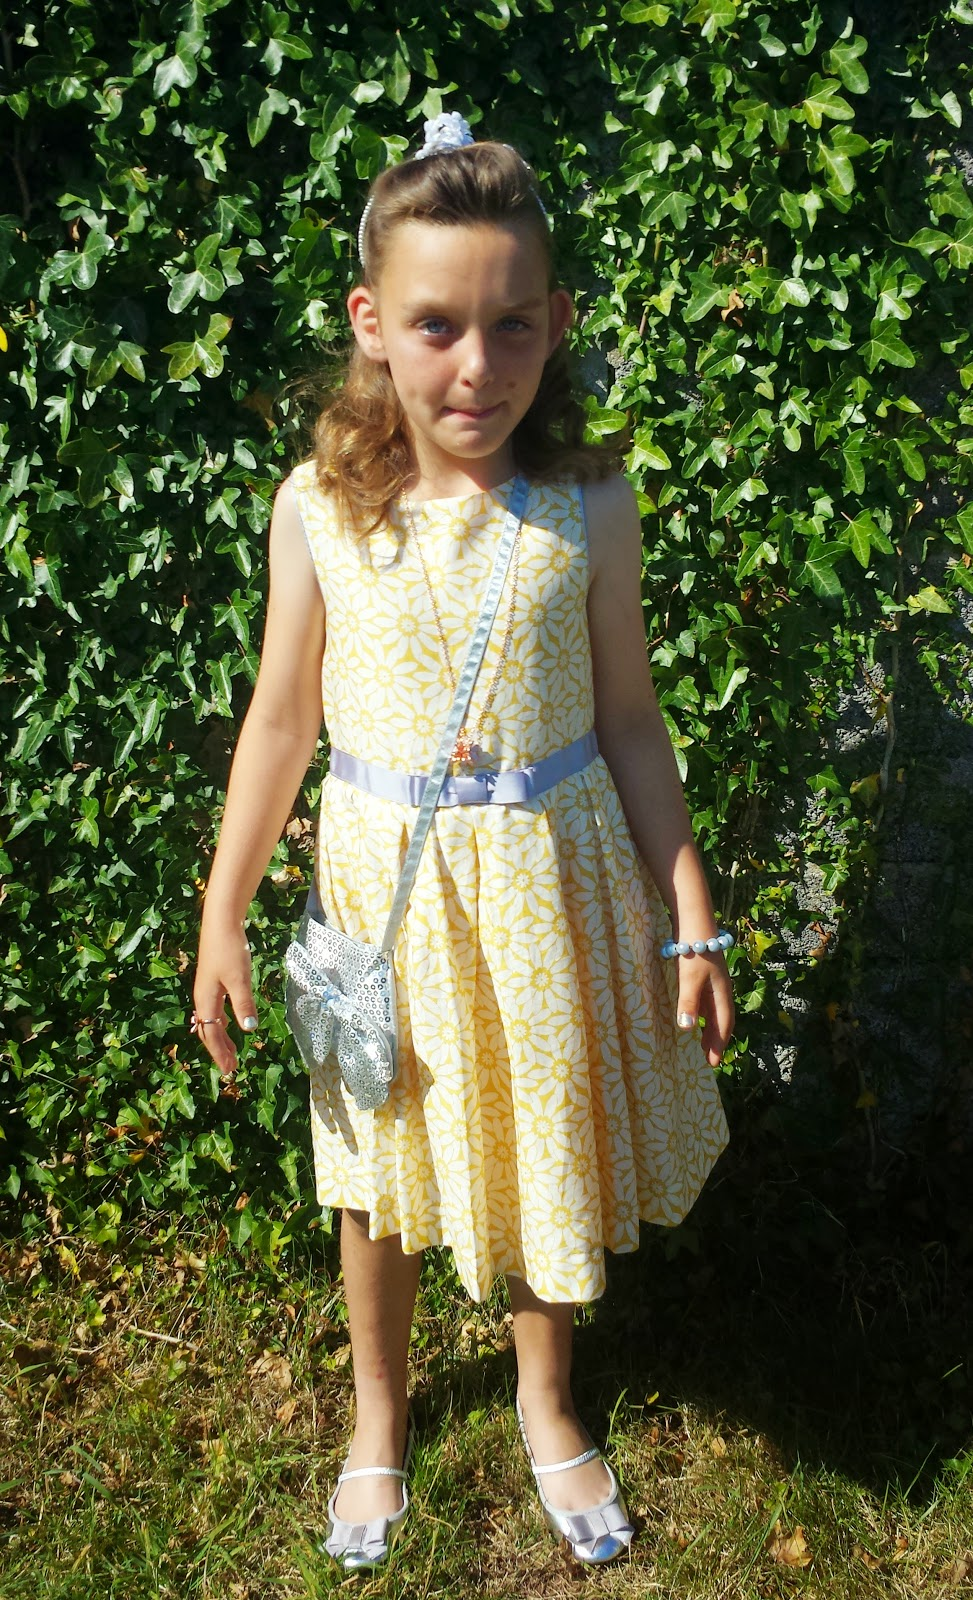 Rebecca Big Brownie Birthday 100 Ball M&S Yellow Floral Dress Style Fashion